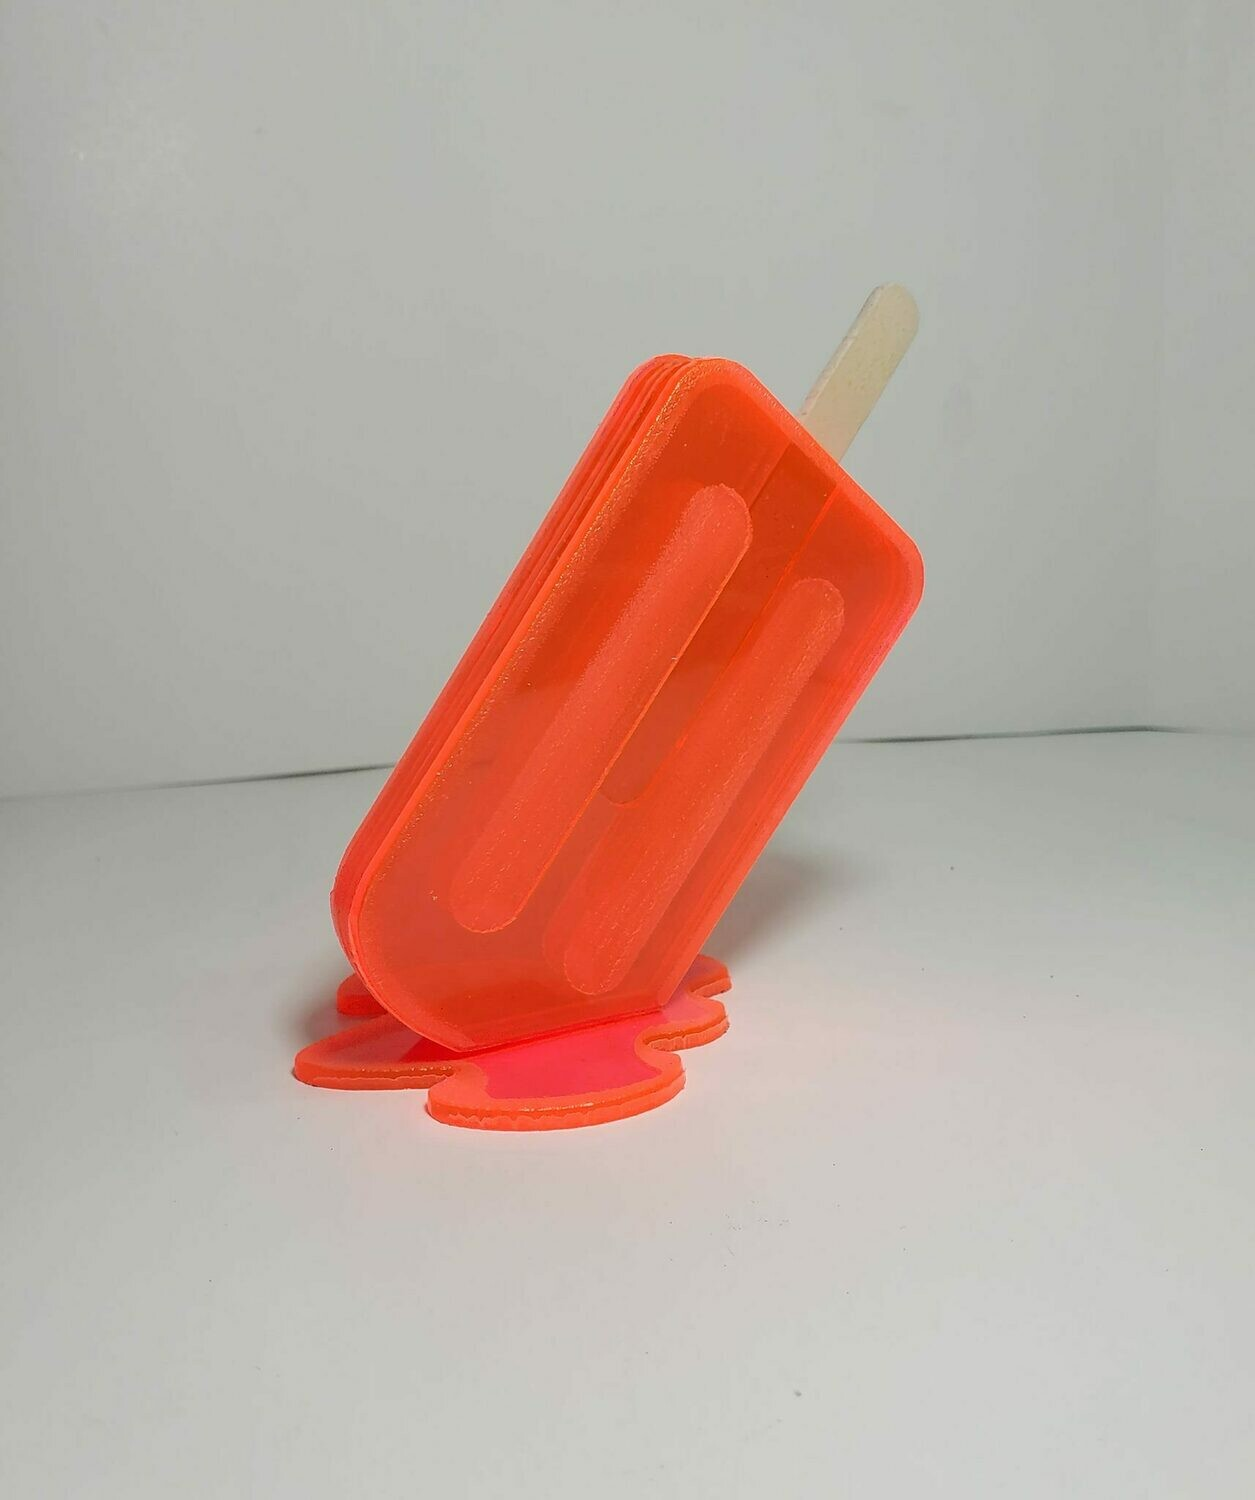 Melting Plexi Popsicle